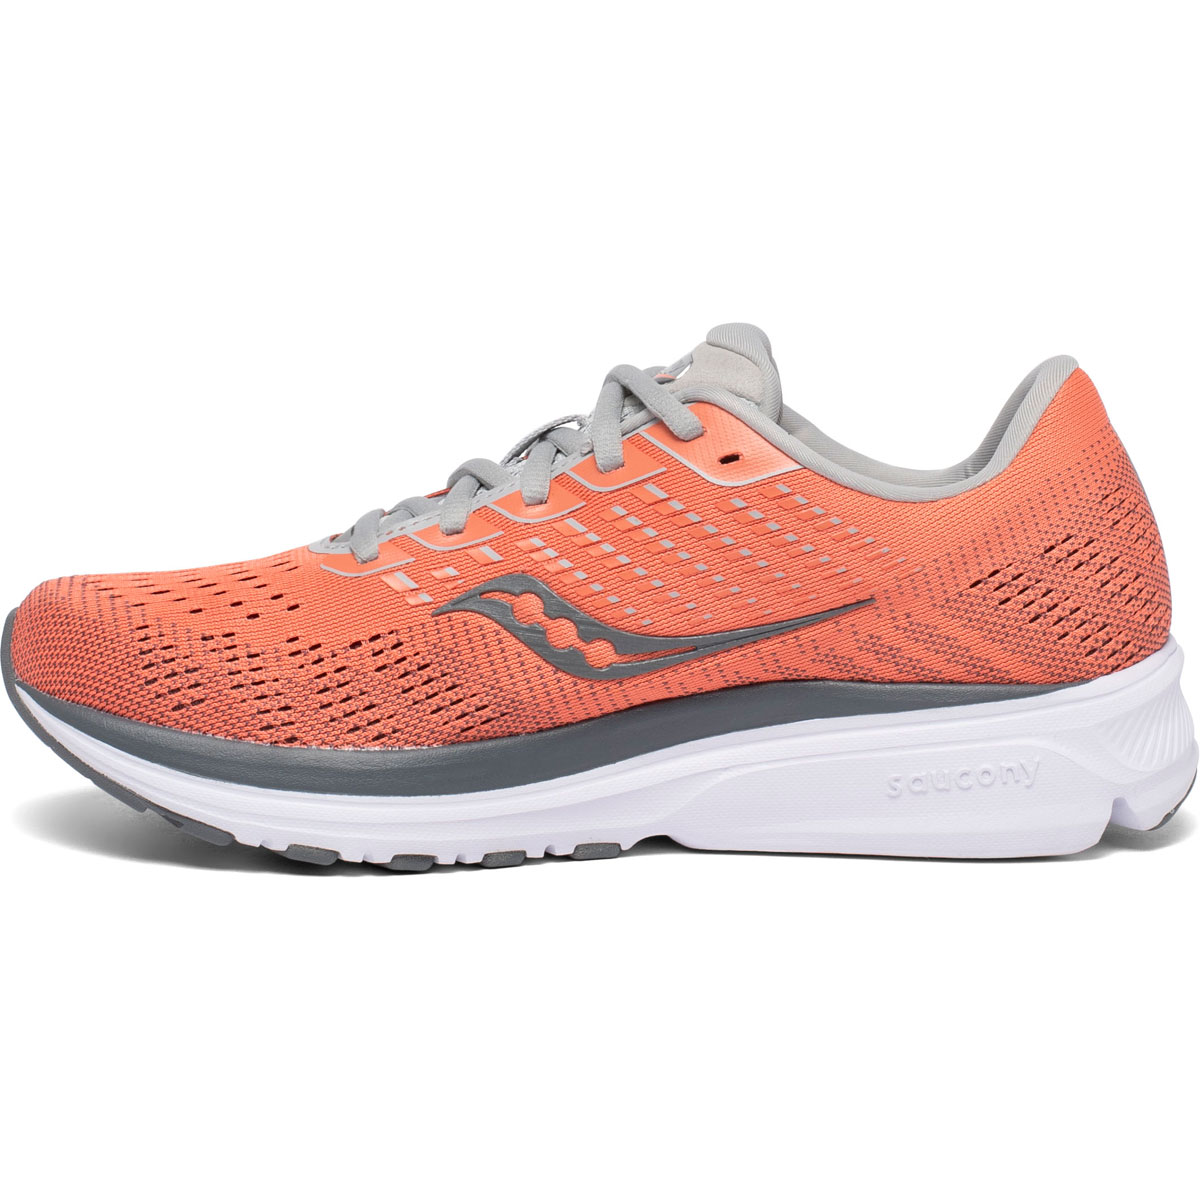 Women's Saucony Ride 13 Running Shoe - Color: Coral/Alloy - Size: 5 - Width: Regular, Coral/Alloy, large, image 2